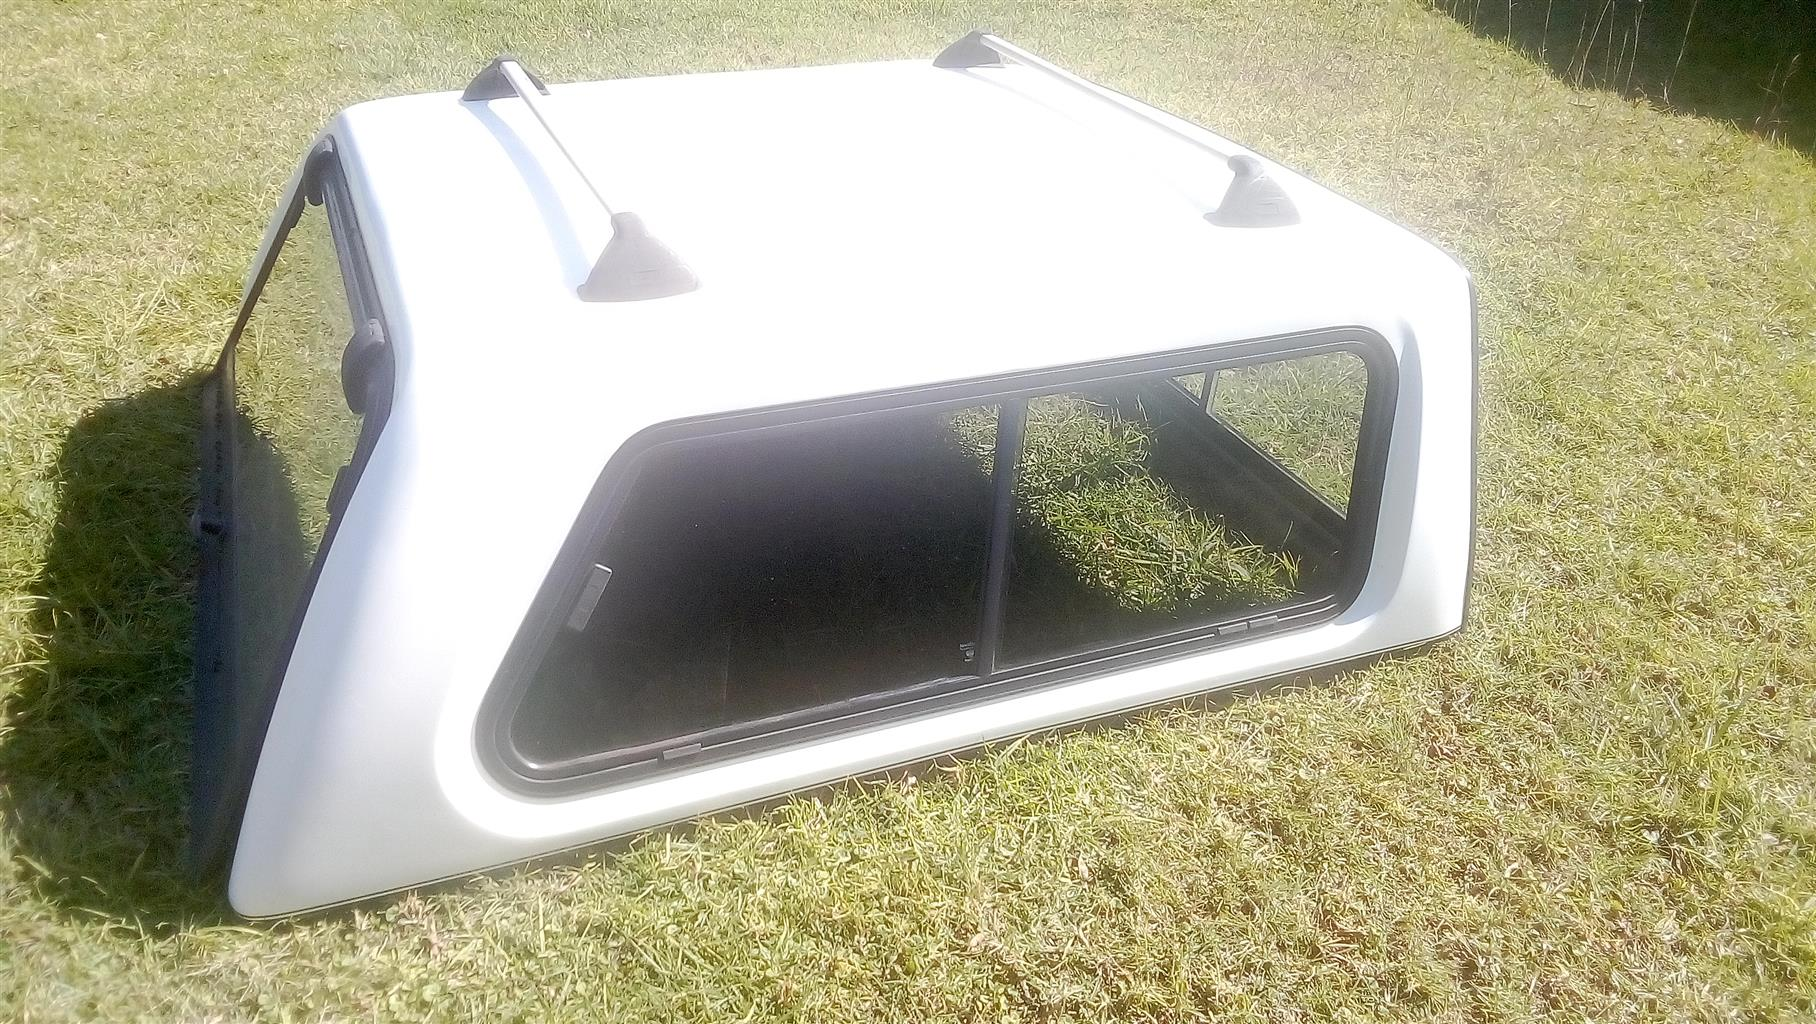 Tata canopy for sale